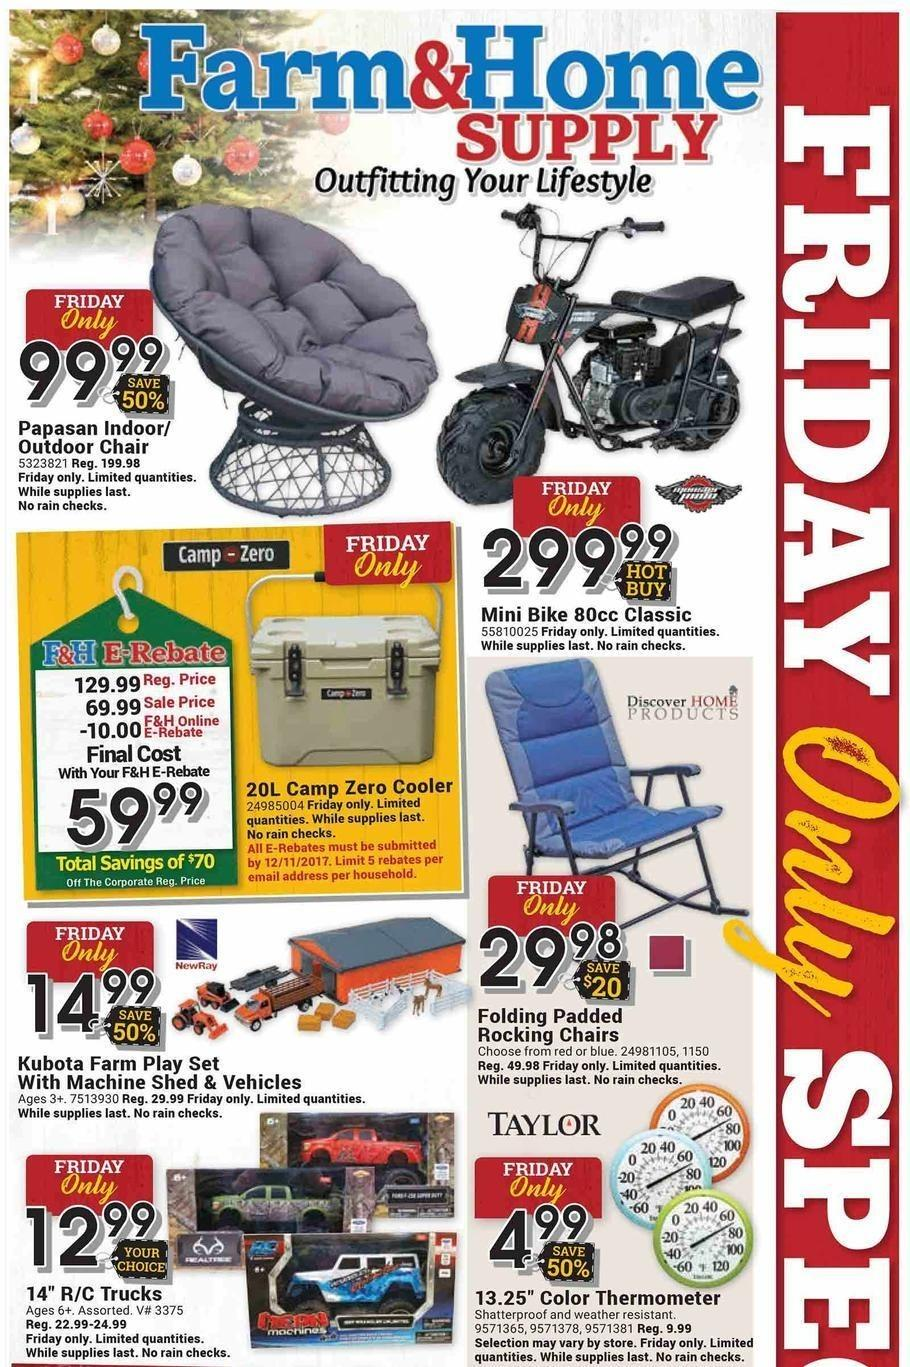 Farm & Home Supply 2017 Black Friday Ad Page 1